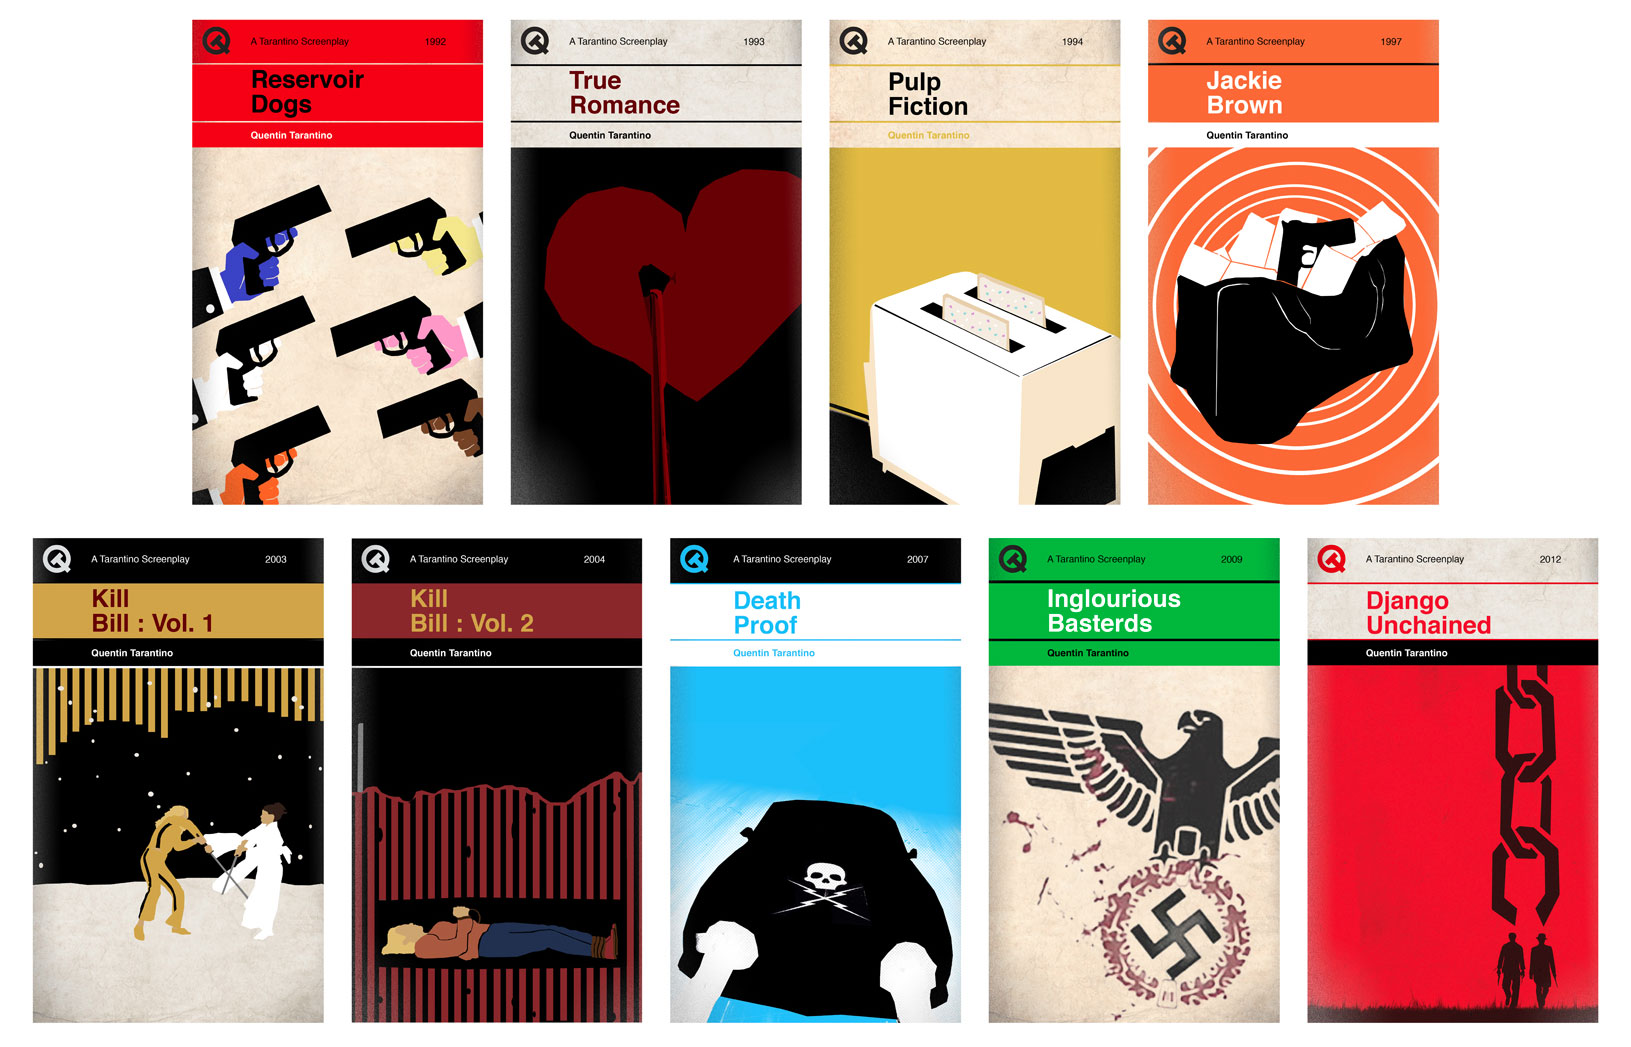 Penguin Classic Book Cover Posters : Quentin tarantino movies as penguin classics the book haven